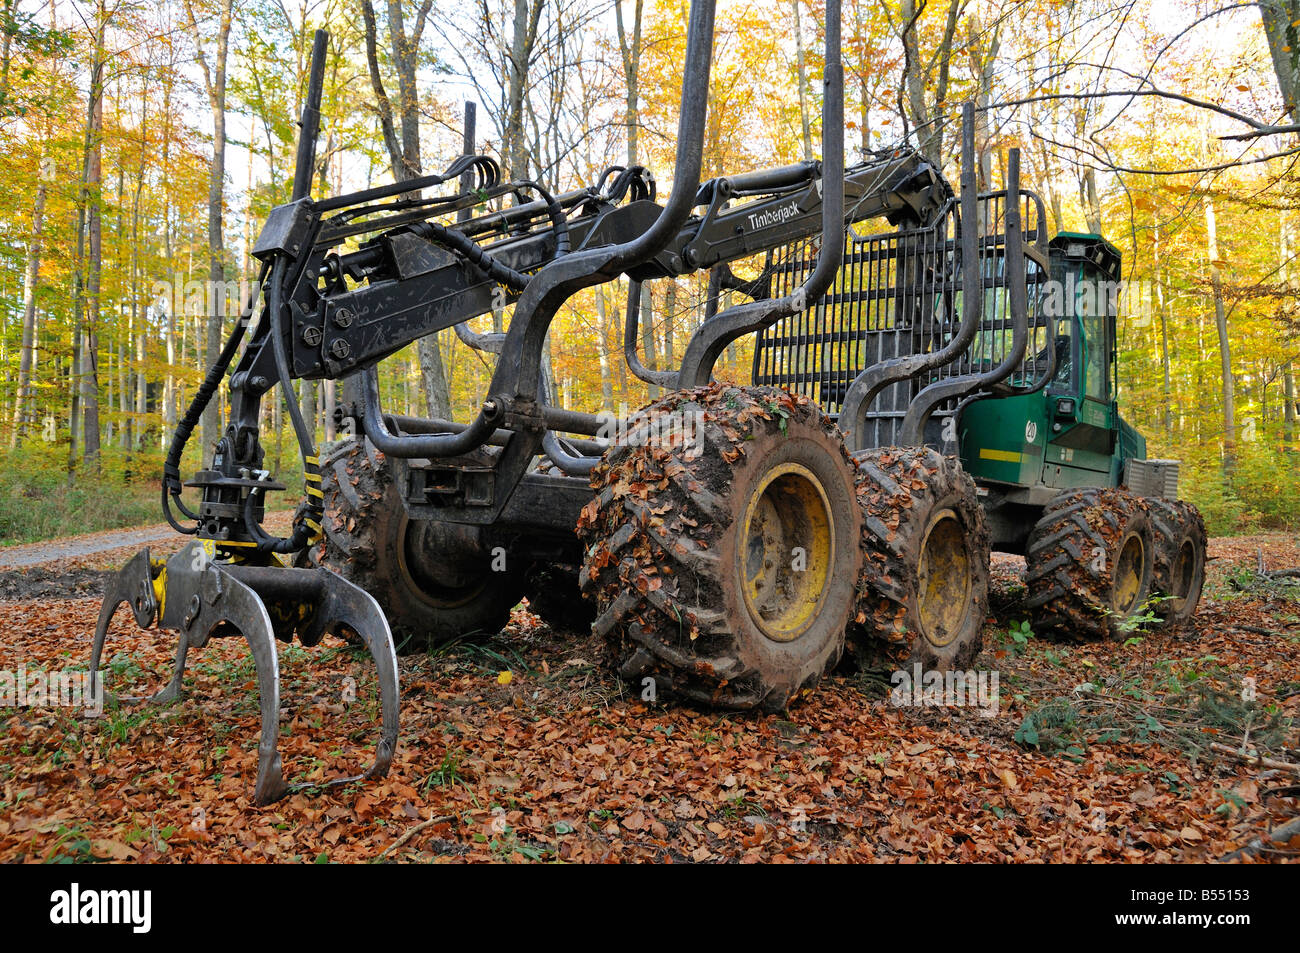 Timberjack forestry machine standing in the forest Stock Photo